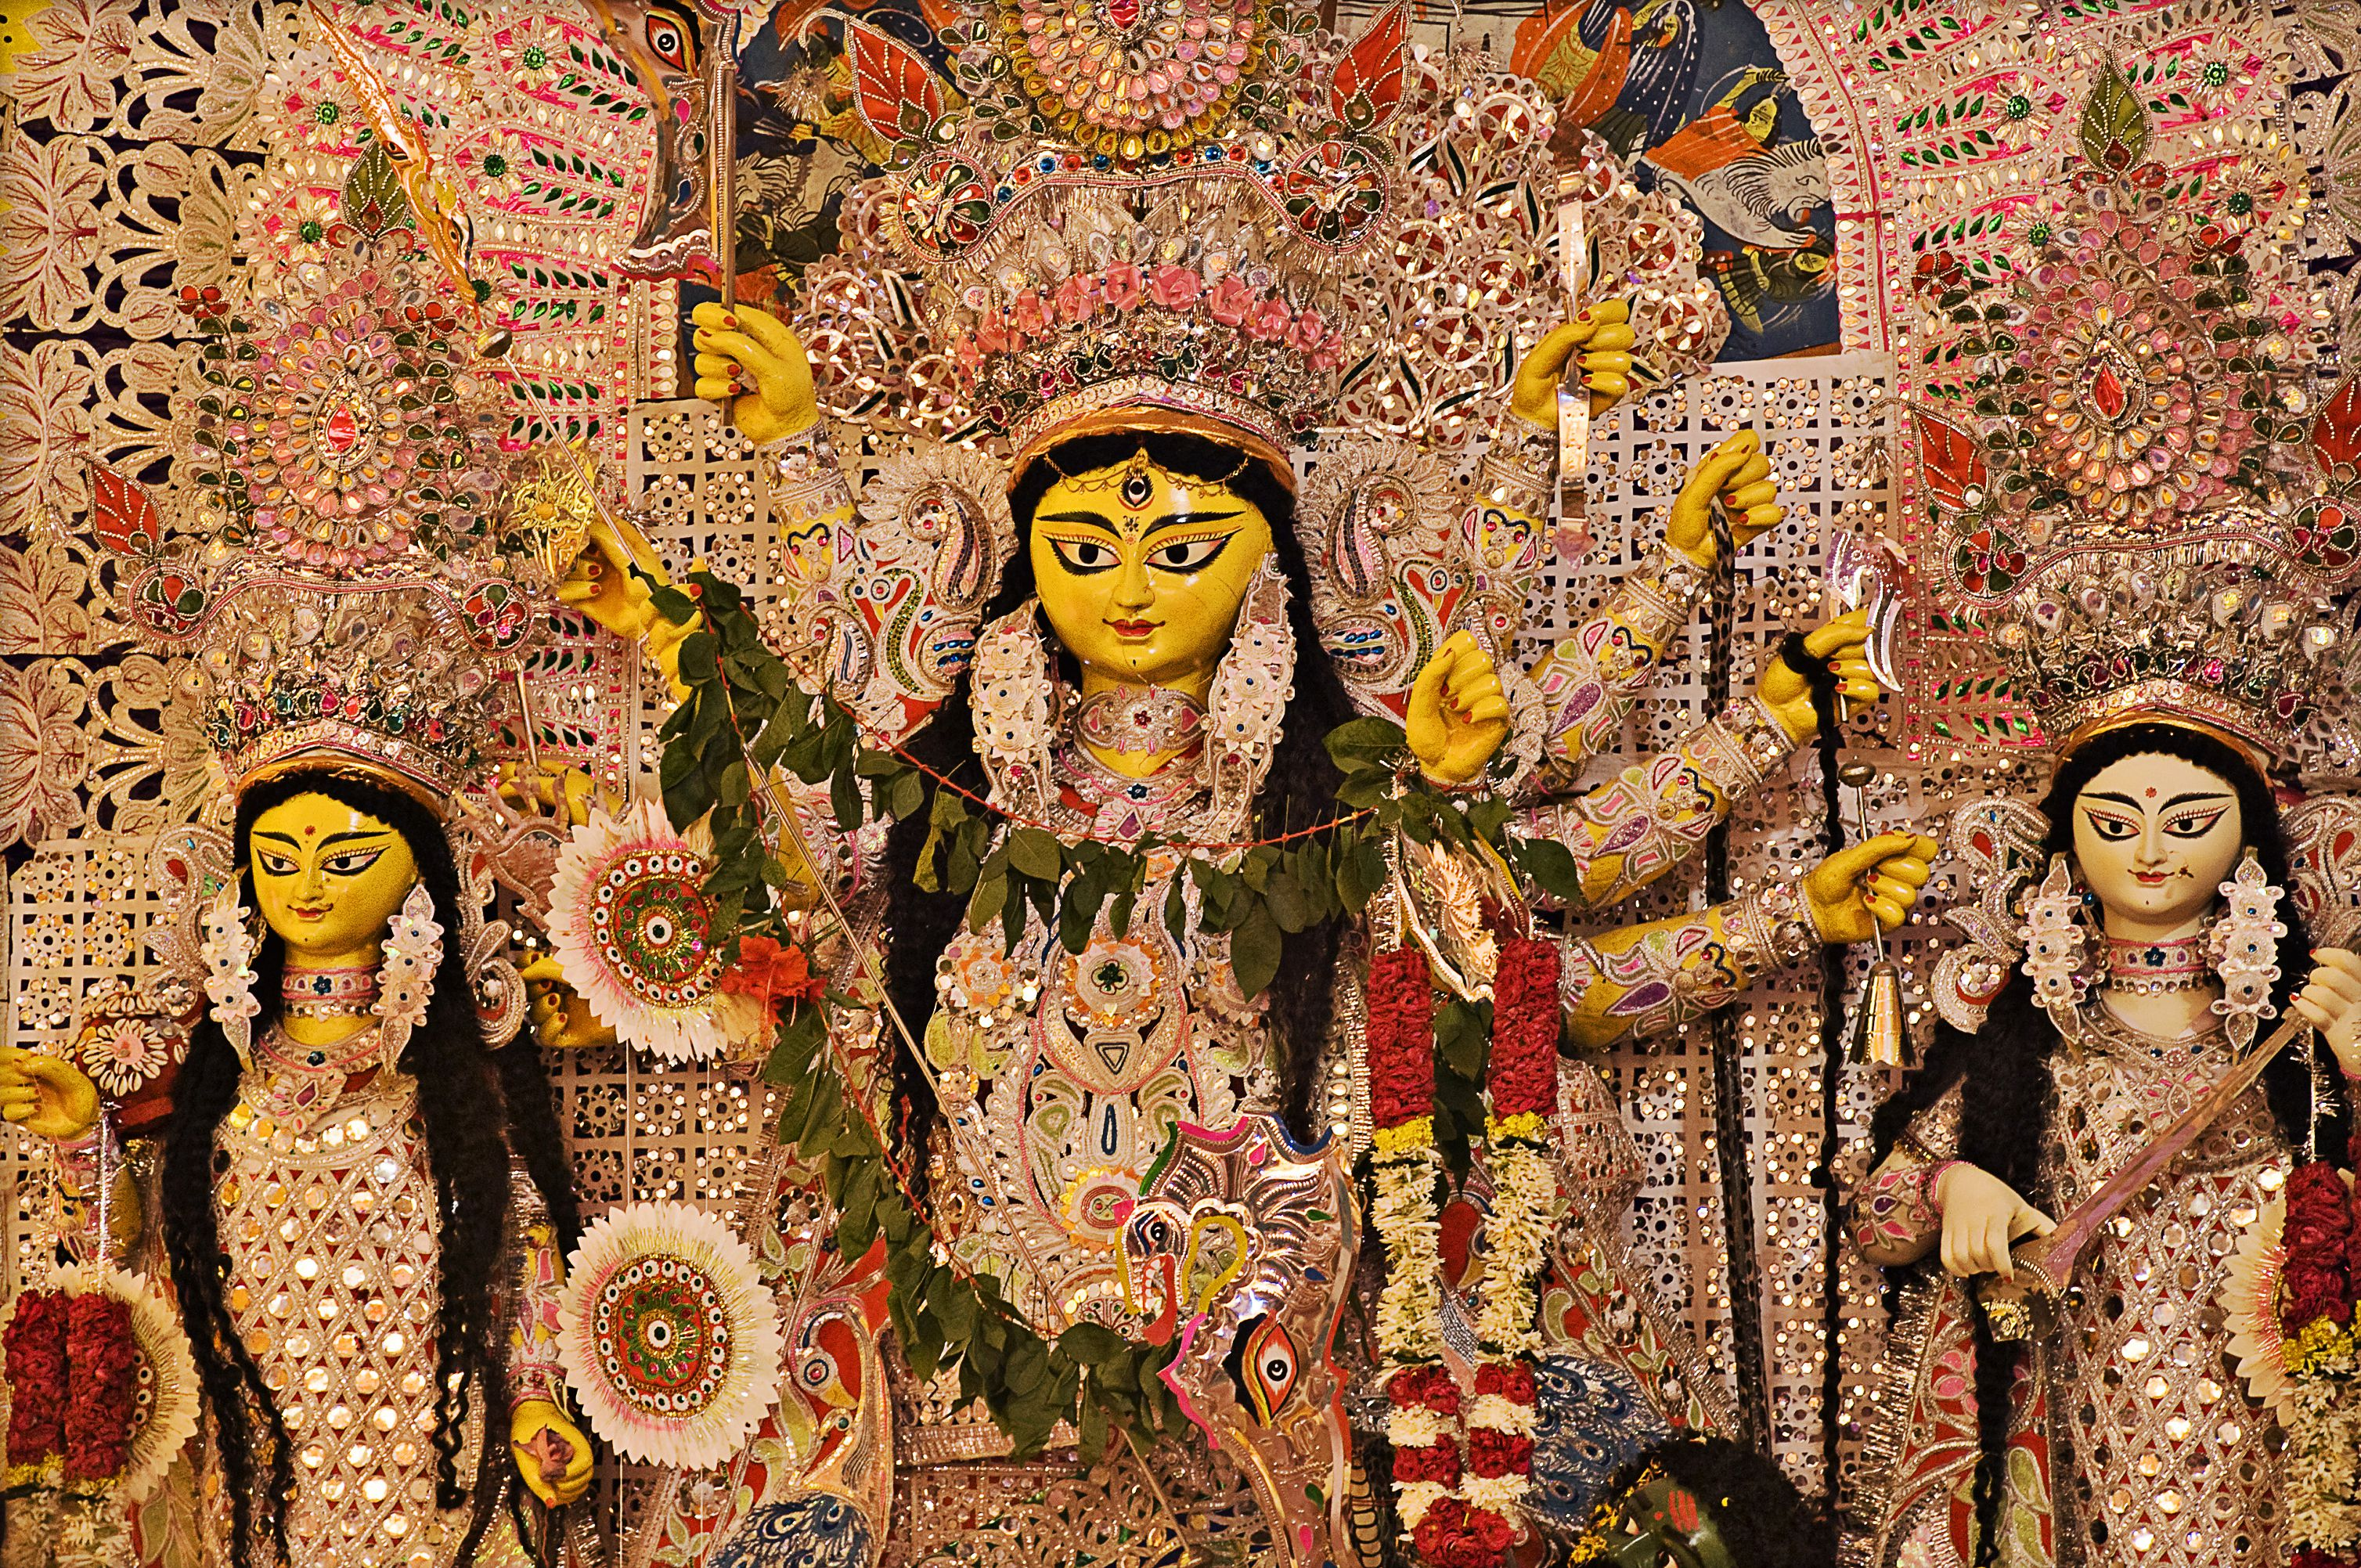 When Is Durga Puja In 2019 2020 And 2021